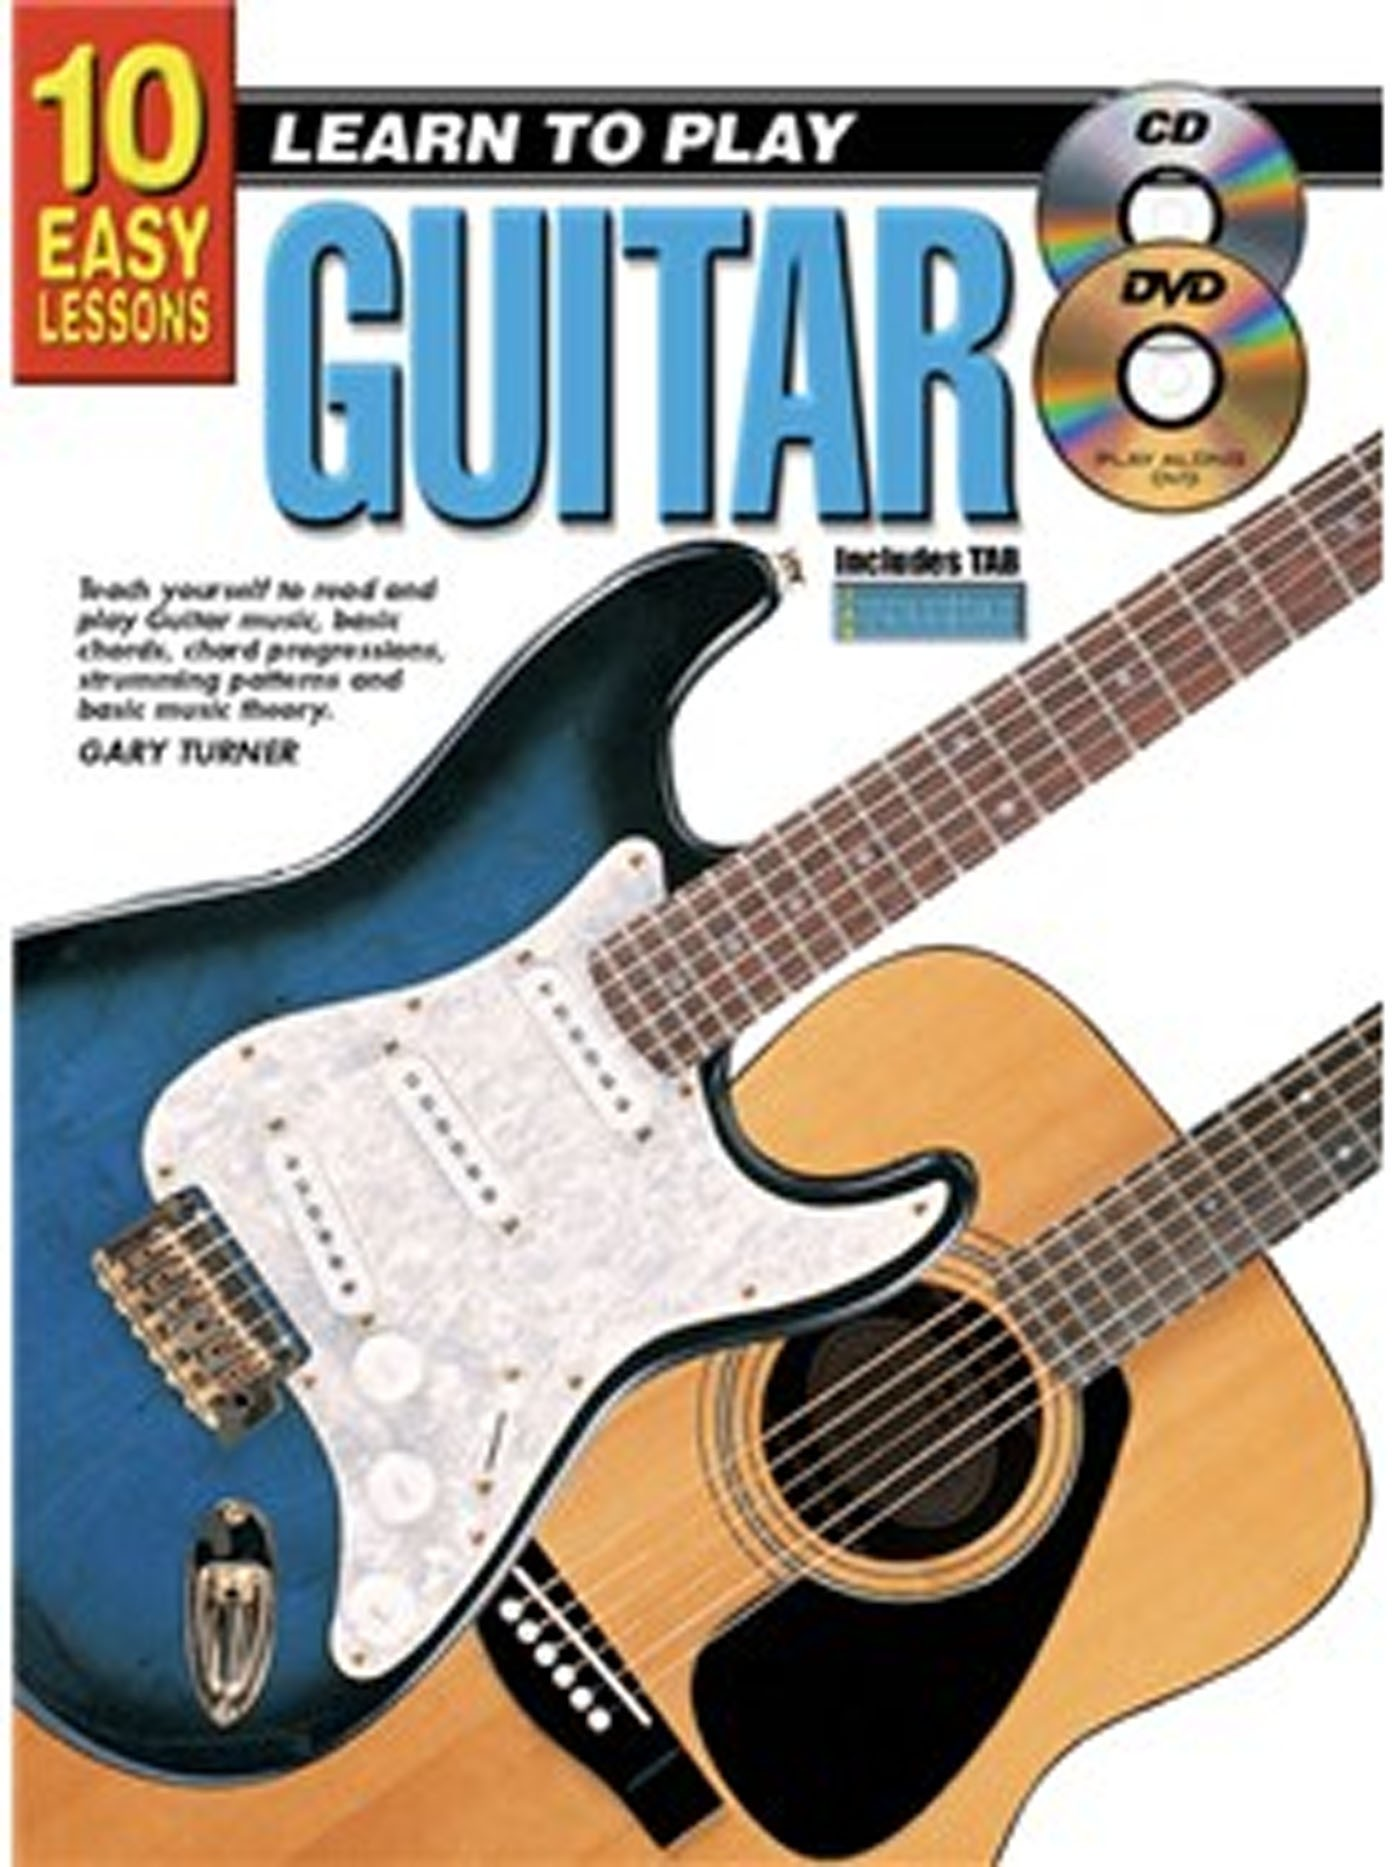 10 Easy Lessons Learn To Play Guitar Tutor Book CD & DVD Gary Turner S137